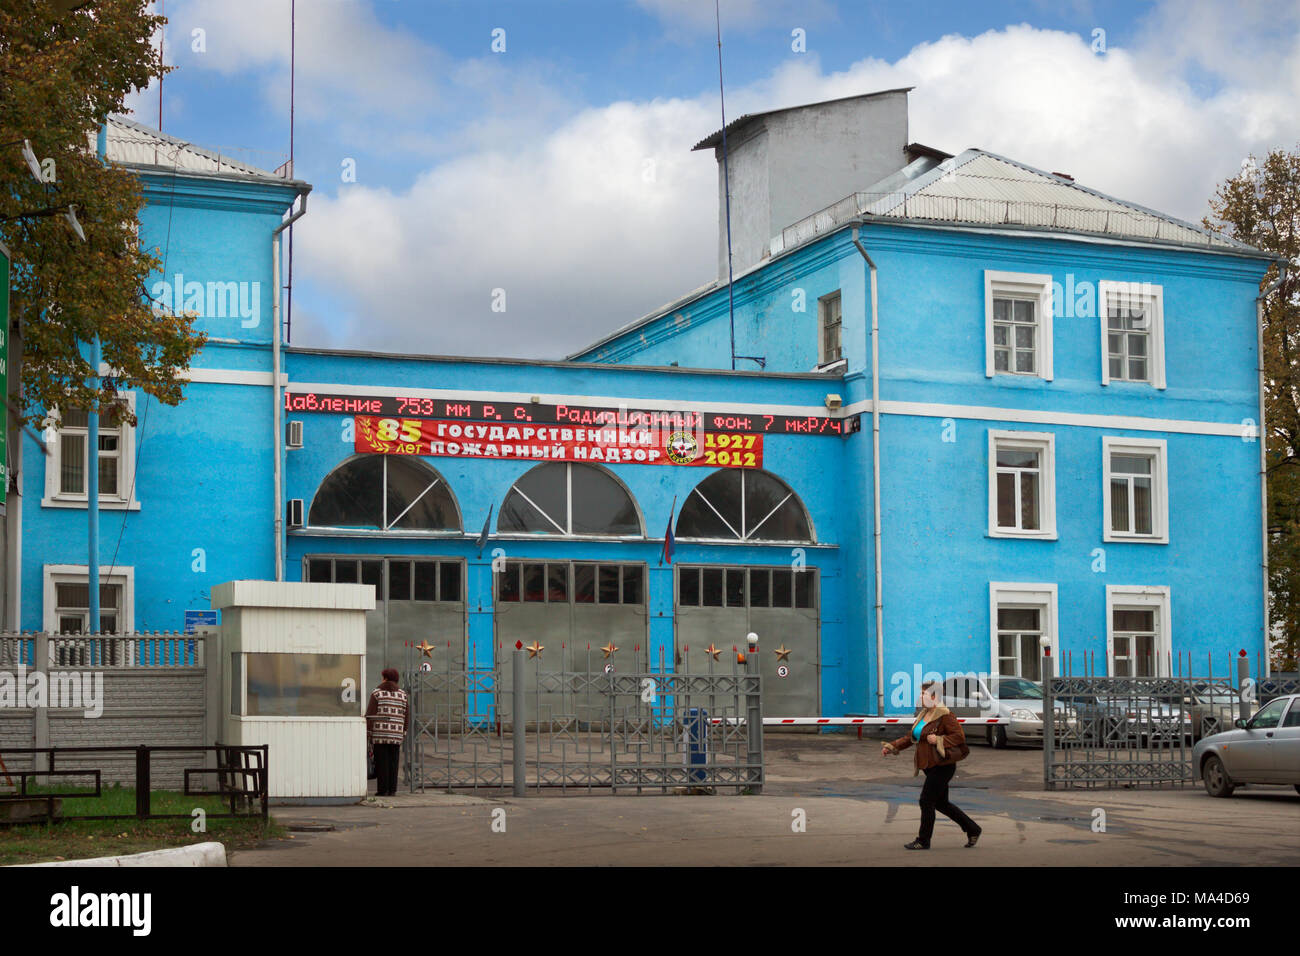 Bor, Russia - October 5, 2012: A small town in the Volga region has a fire station located in an old building. This is the city of Bor Stock Photo